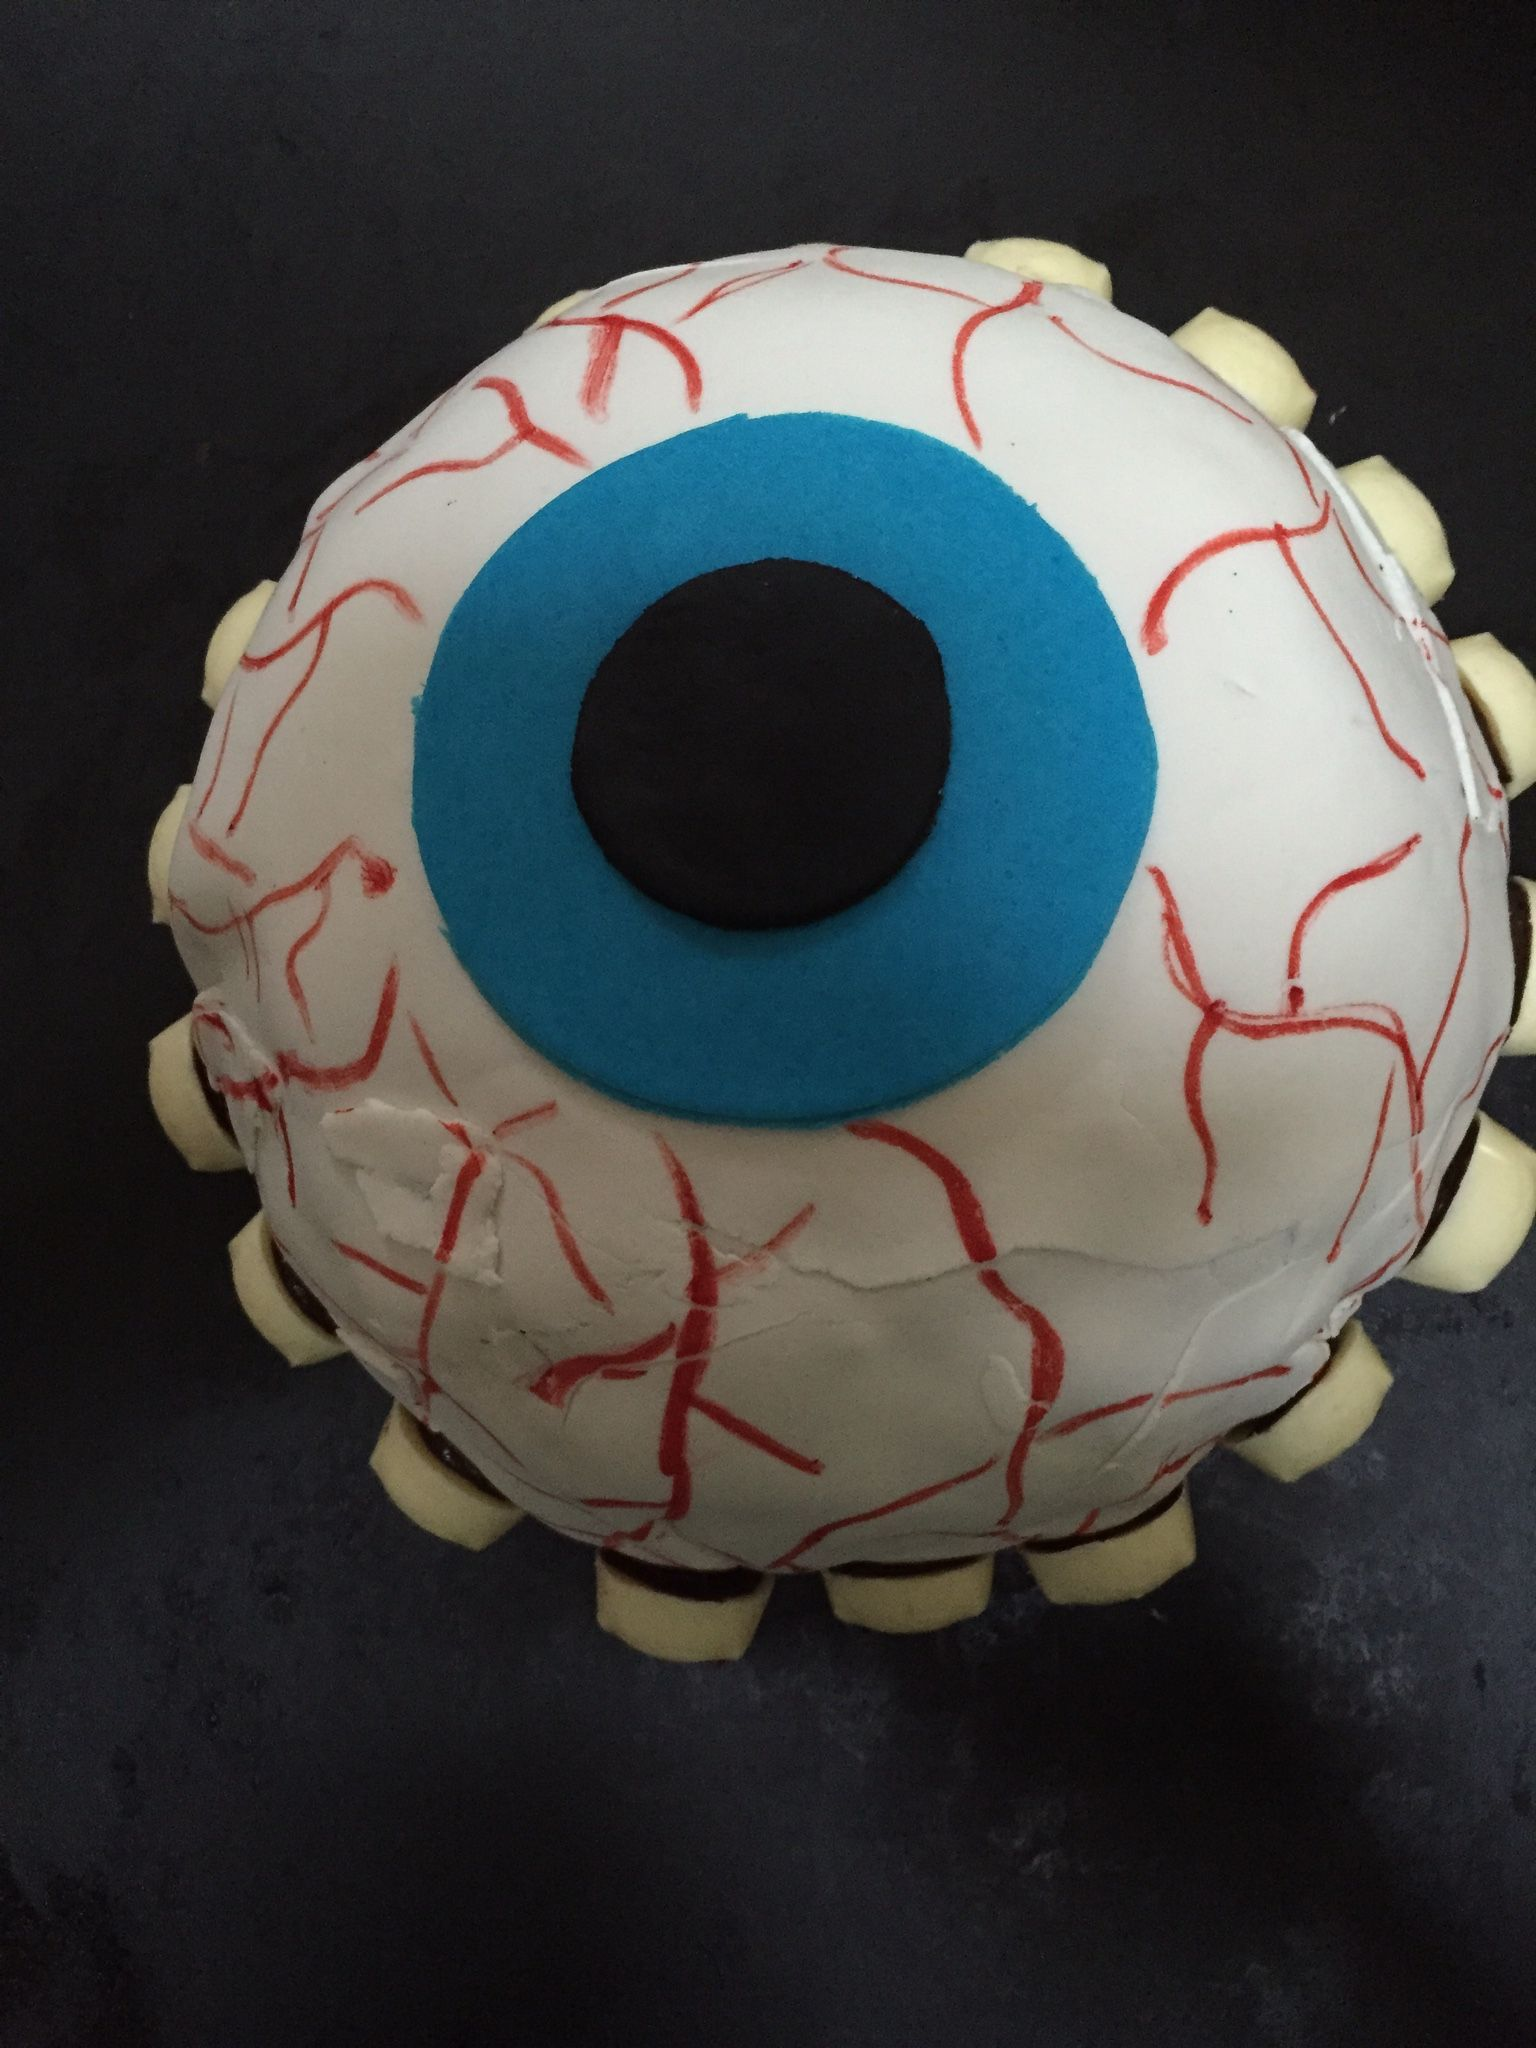 Eye of cathulu birthday cake with chocolate skulls around the bottom as further terraria decorations